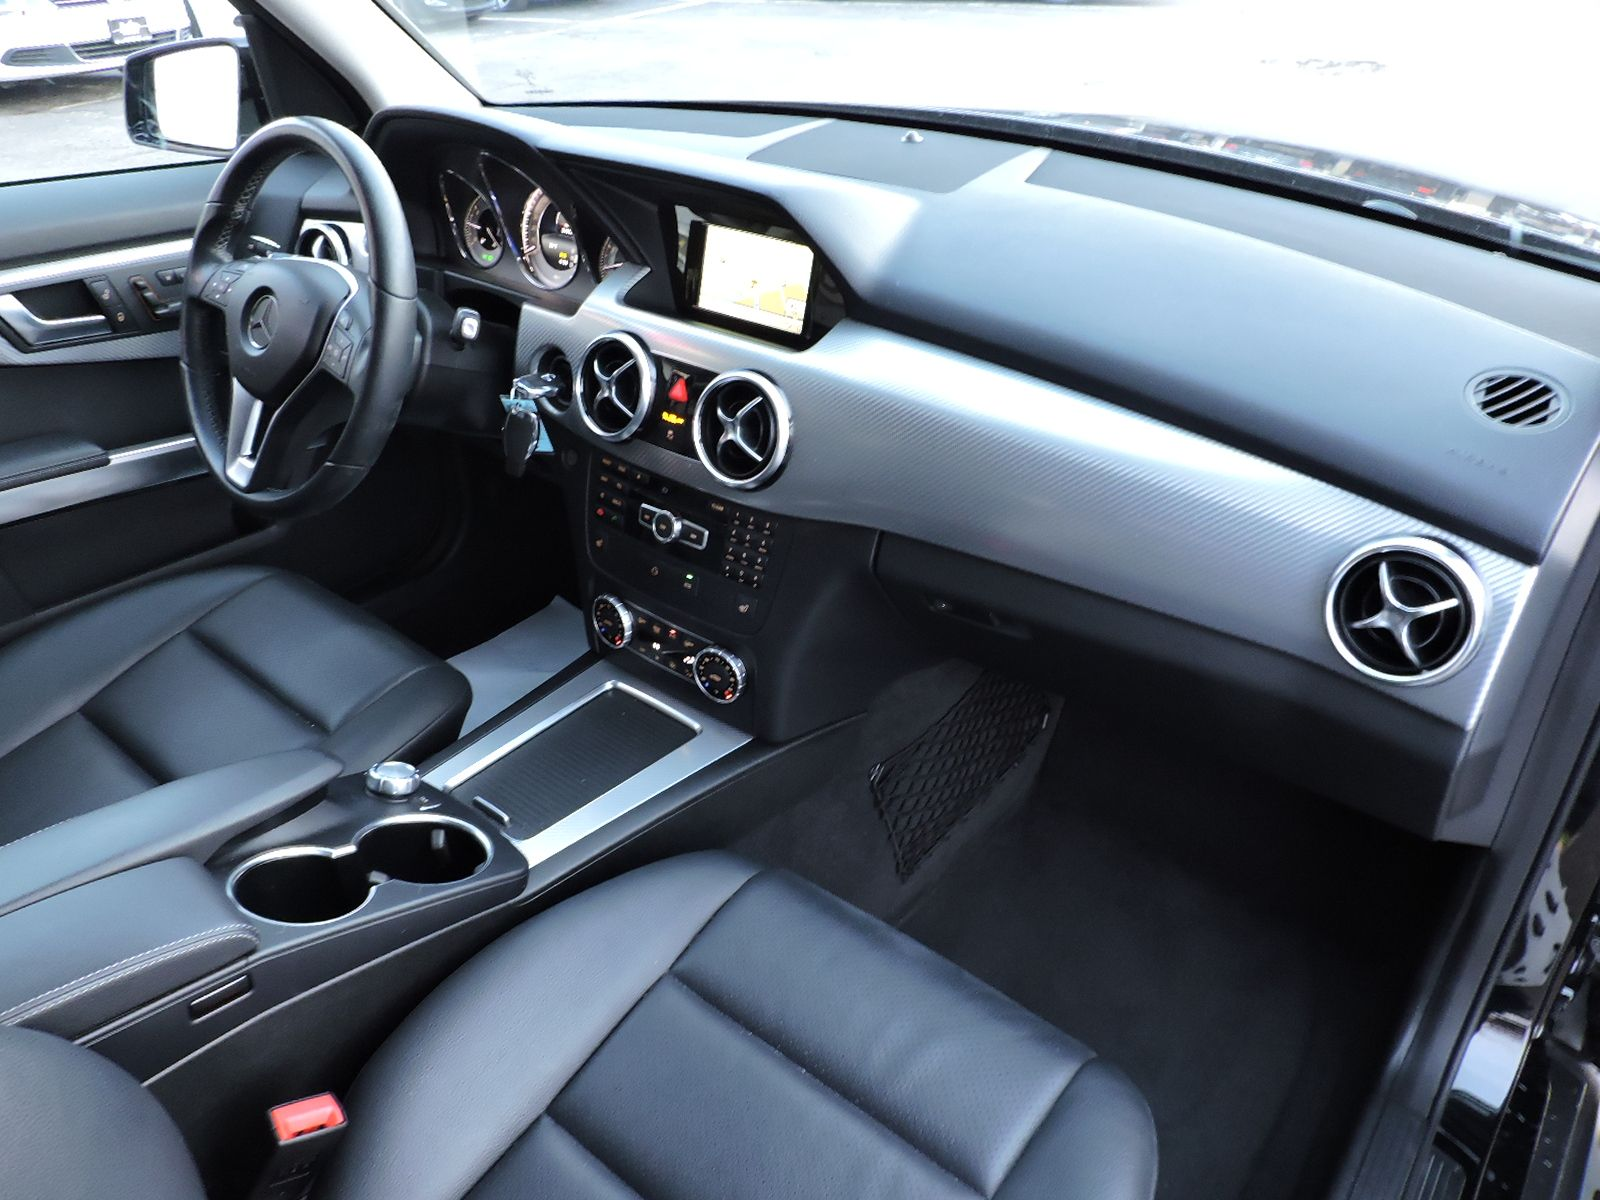 2014 Mercedes-Benz GLK-Class - 4Matic - All Wheel Drive - Navigation